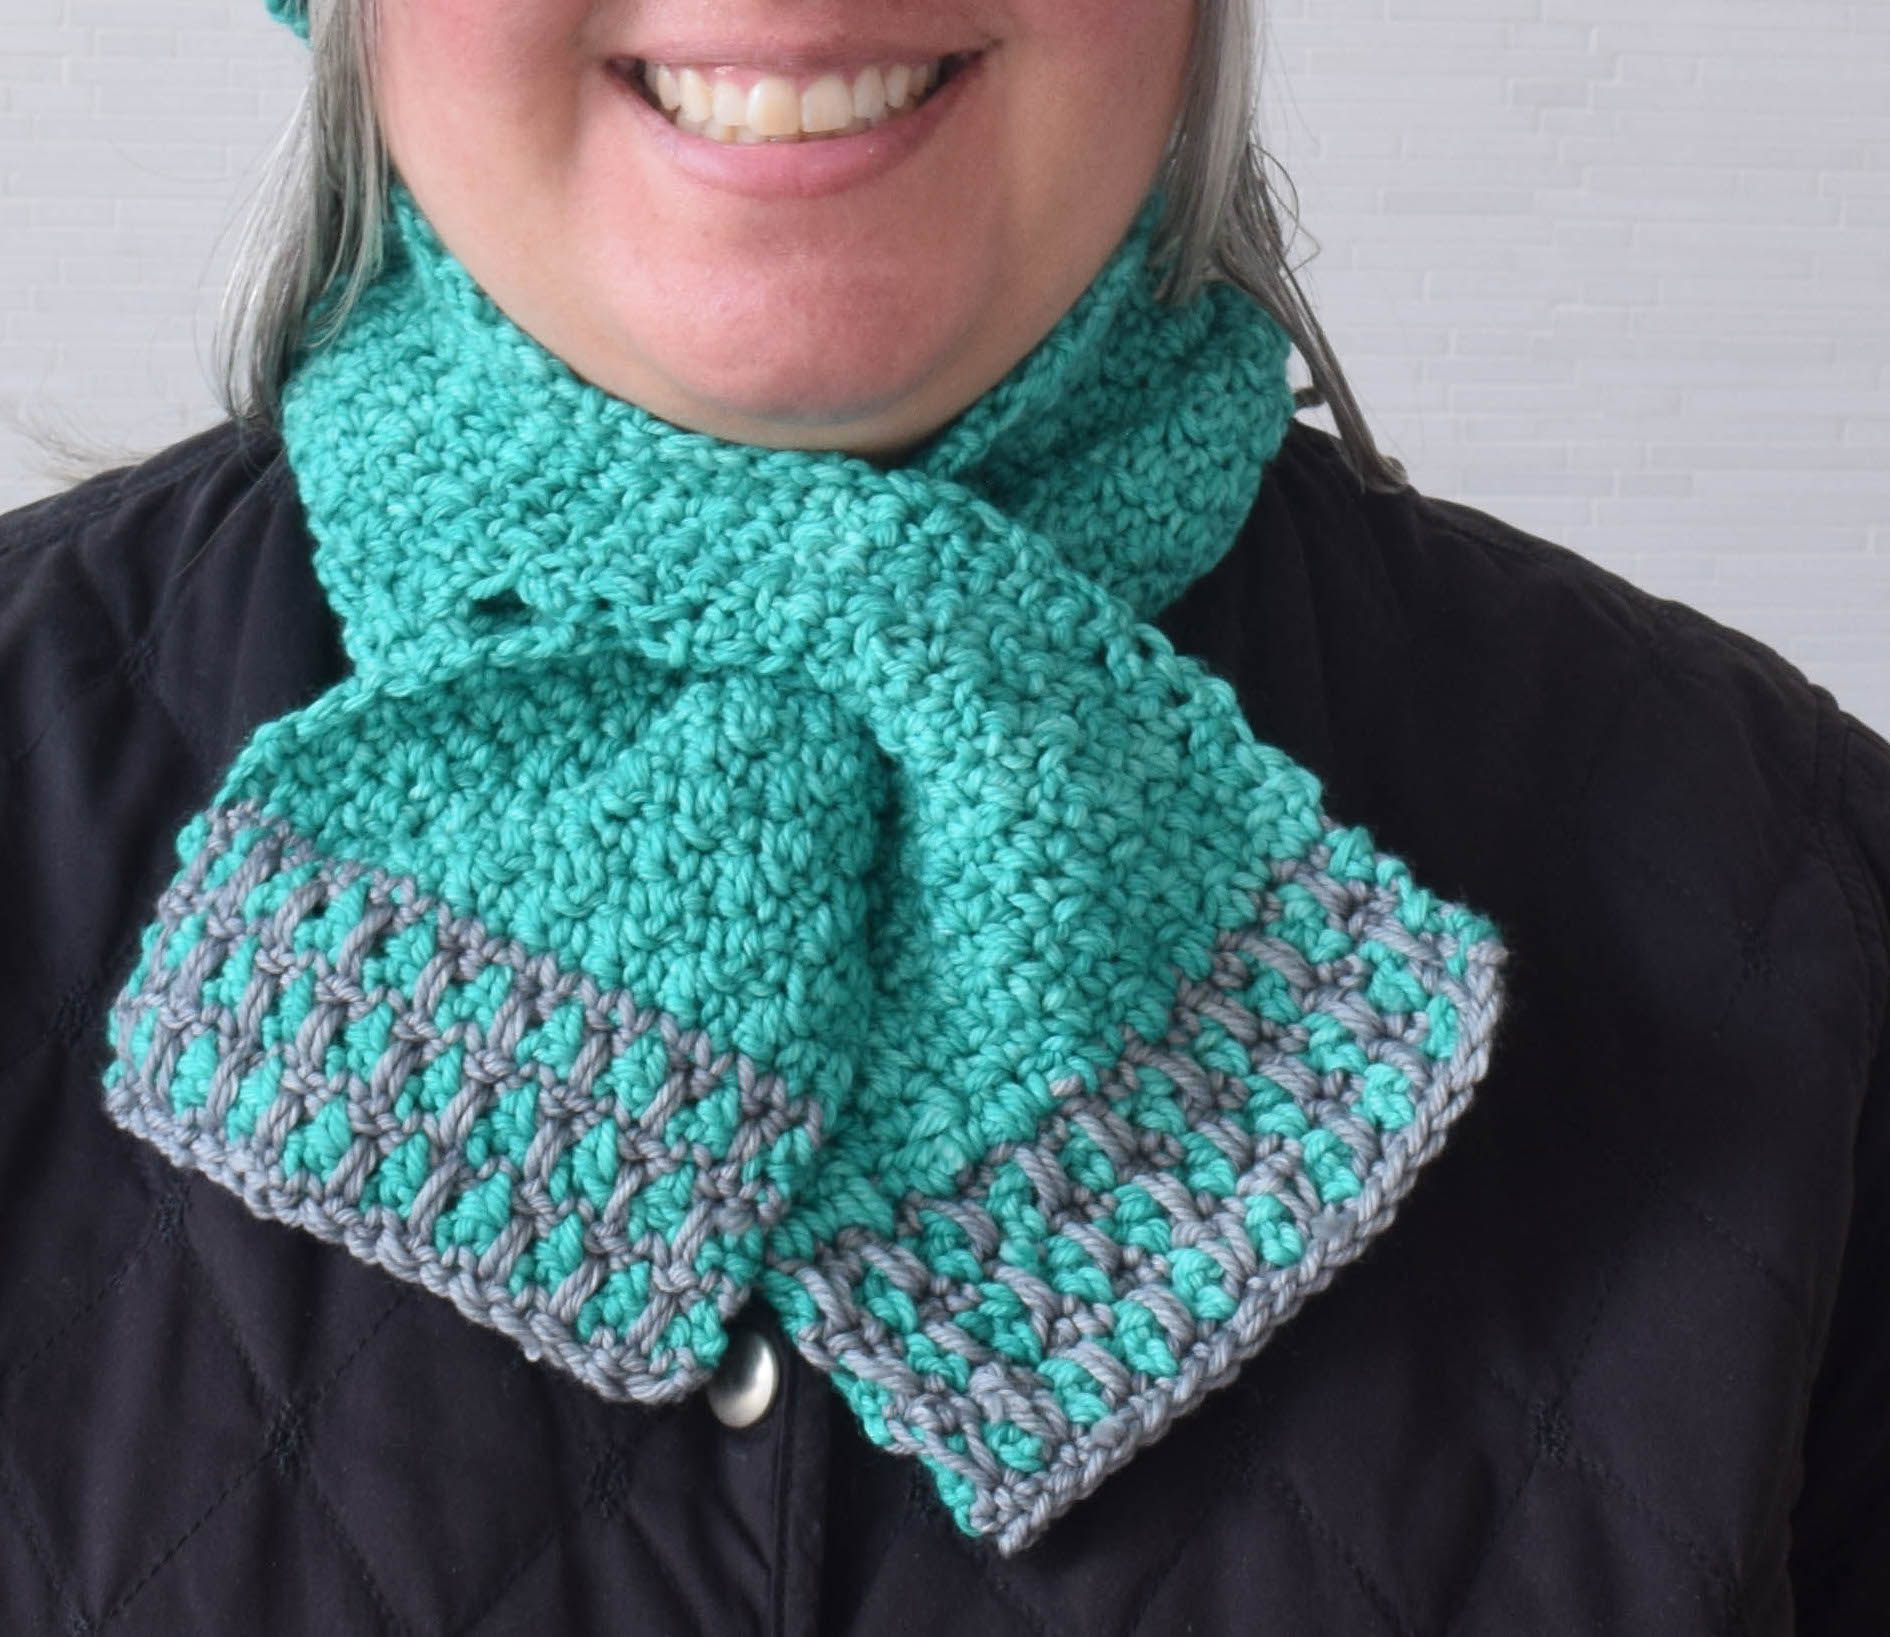 Scarf Crochet Pattern Free to Upgrade Your Winter Style Crochet Pattern In The Neighborhood Keyhole Scarf Underground Crafter